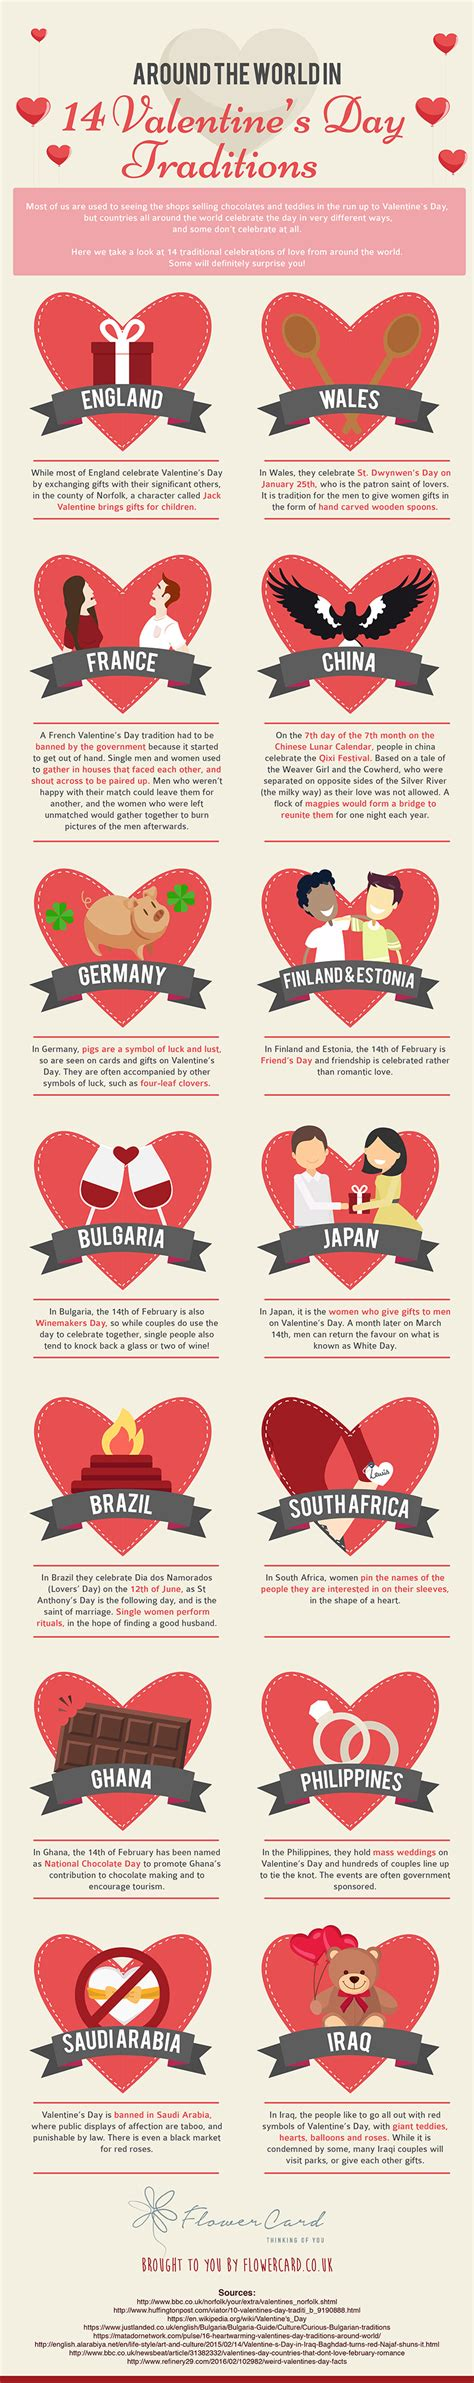 valentines traditions 14 s day traditions around the world a new